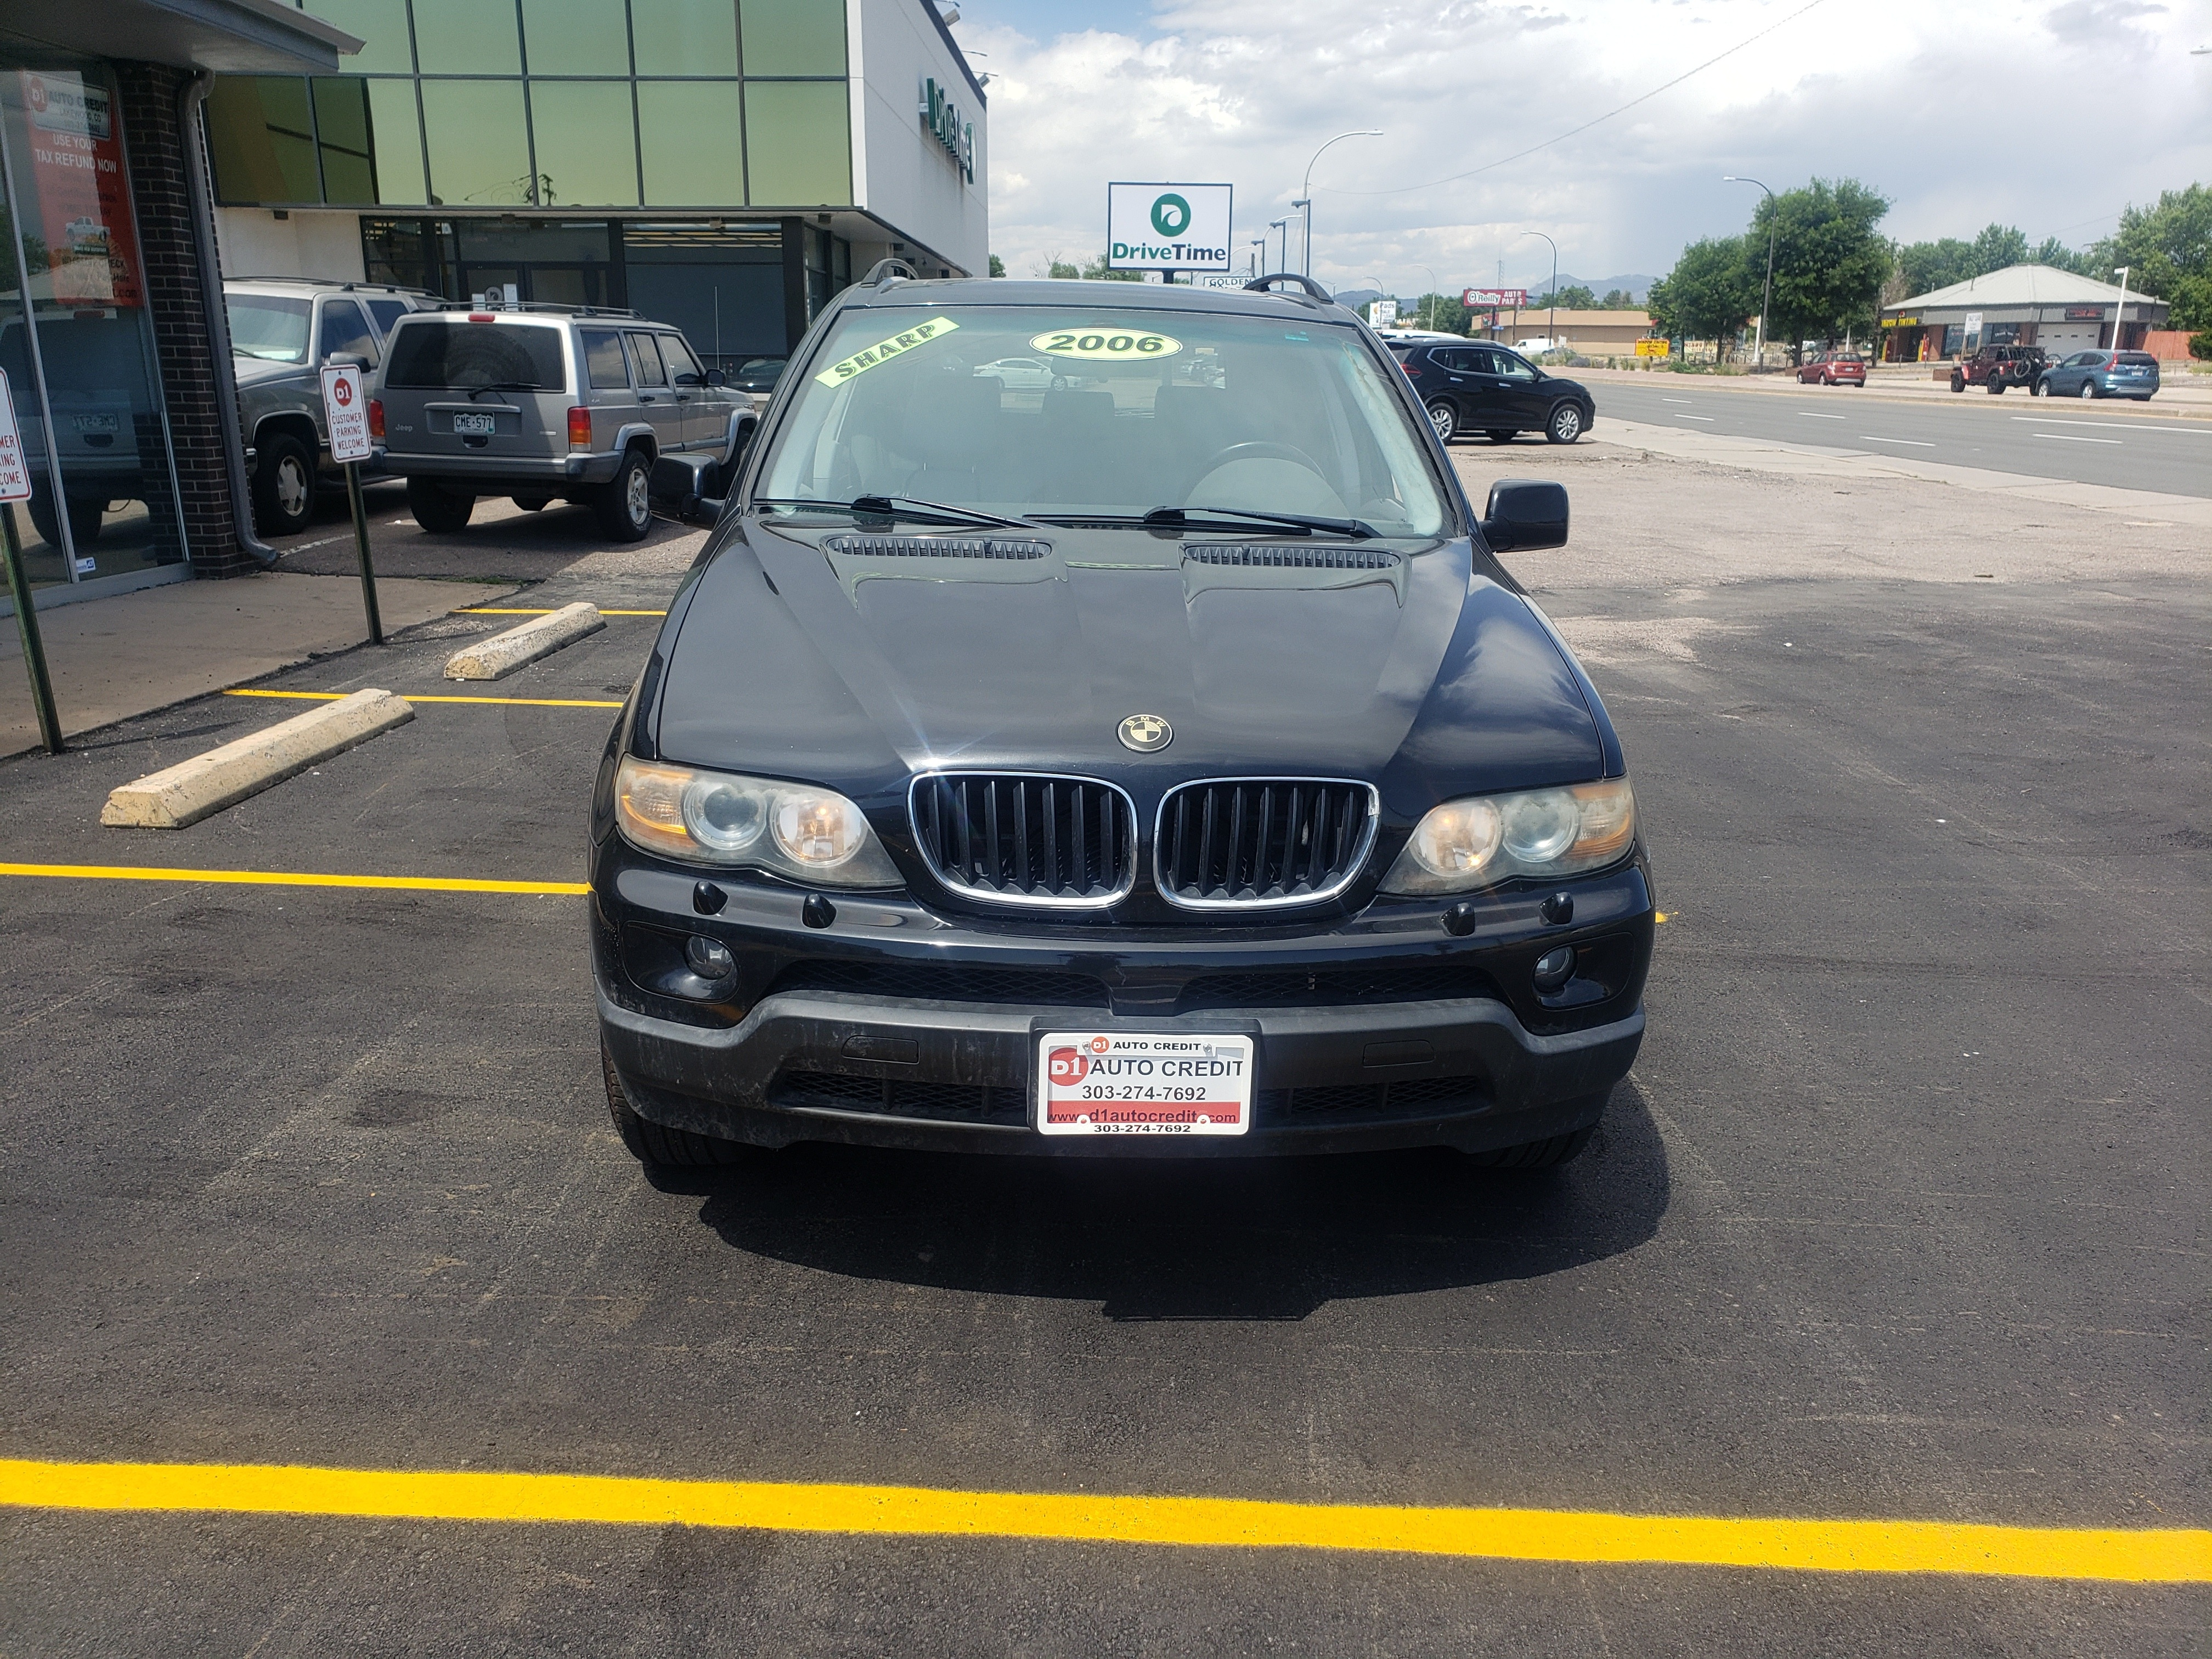 2006 Bmw X5 X5 4dr Awd 3 0i D1 Auto Credit Dealership In Lakewood